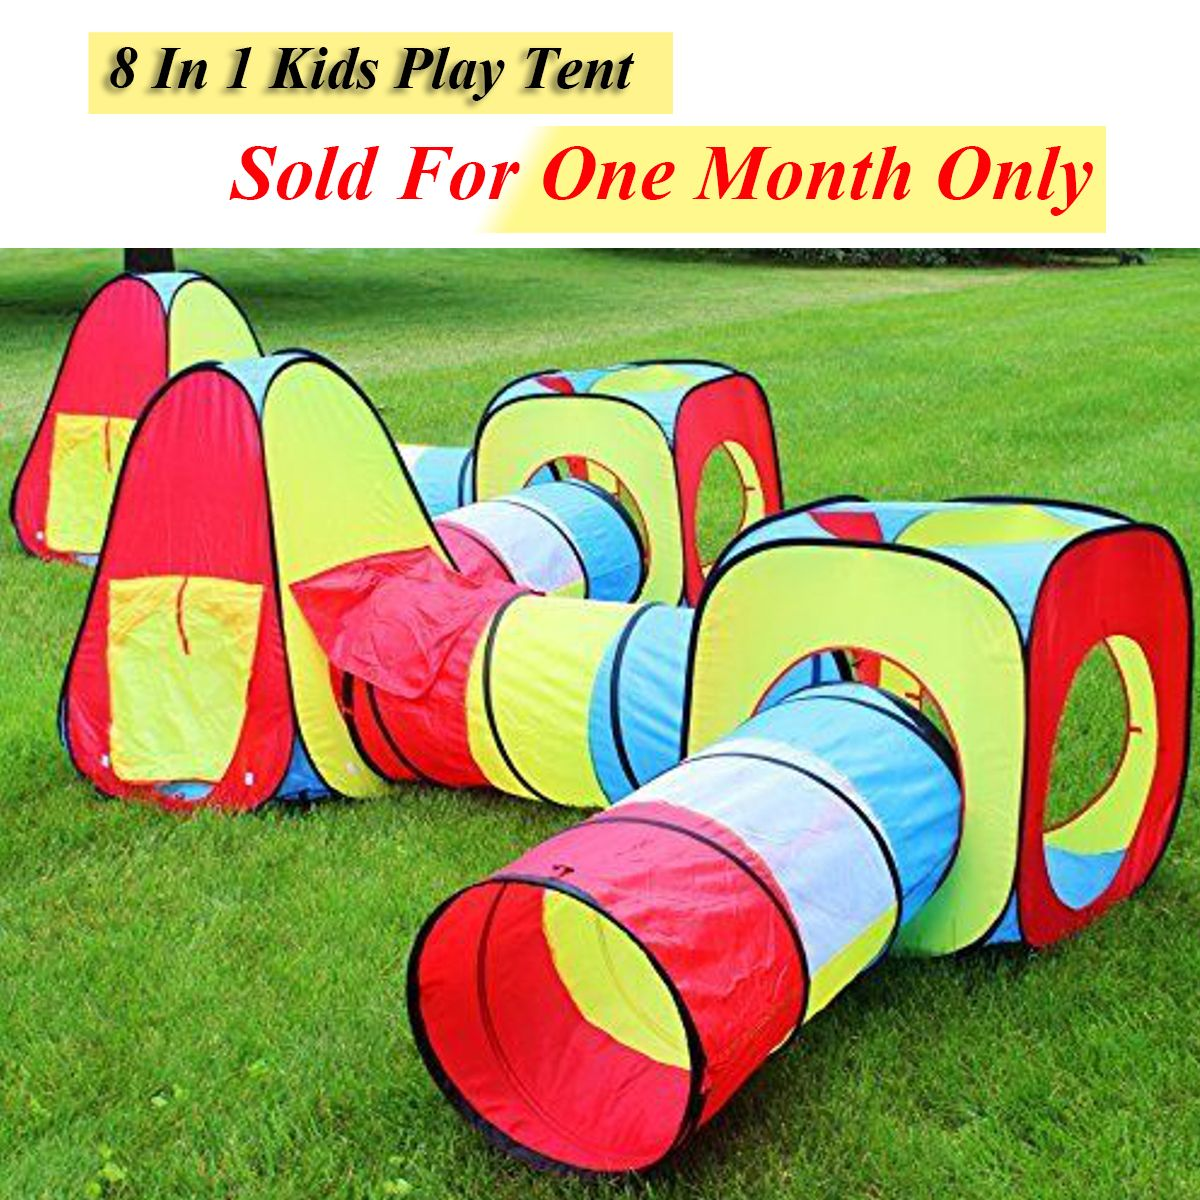 8 In 1 Portable Baby Playpen Children Kids Ball Pool Foldable Pop Up Play Tent Tunnel Play House Hut Indoor Outdoor Toys Fancing